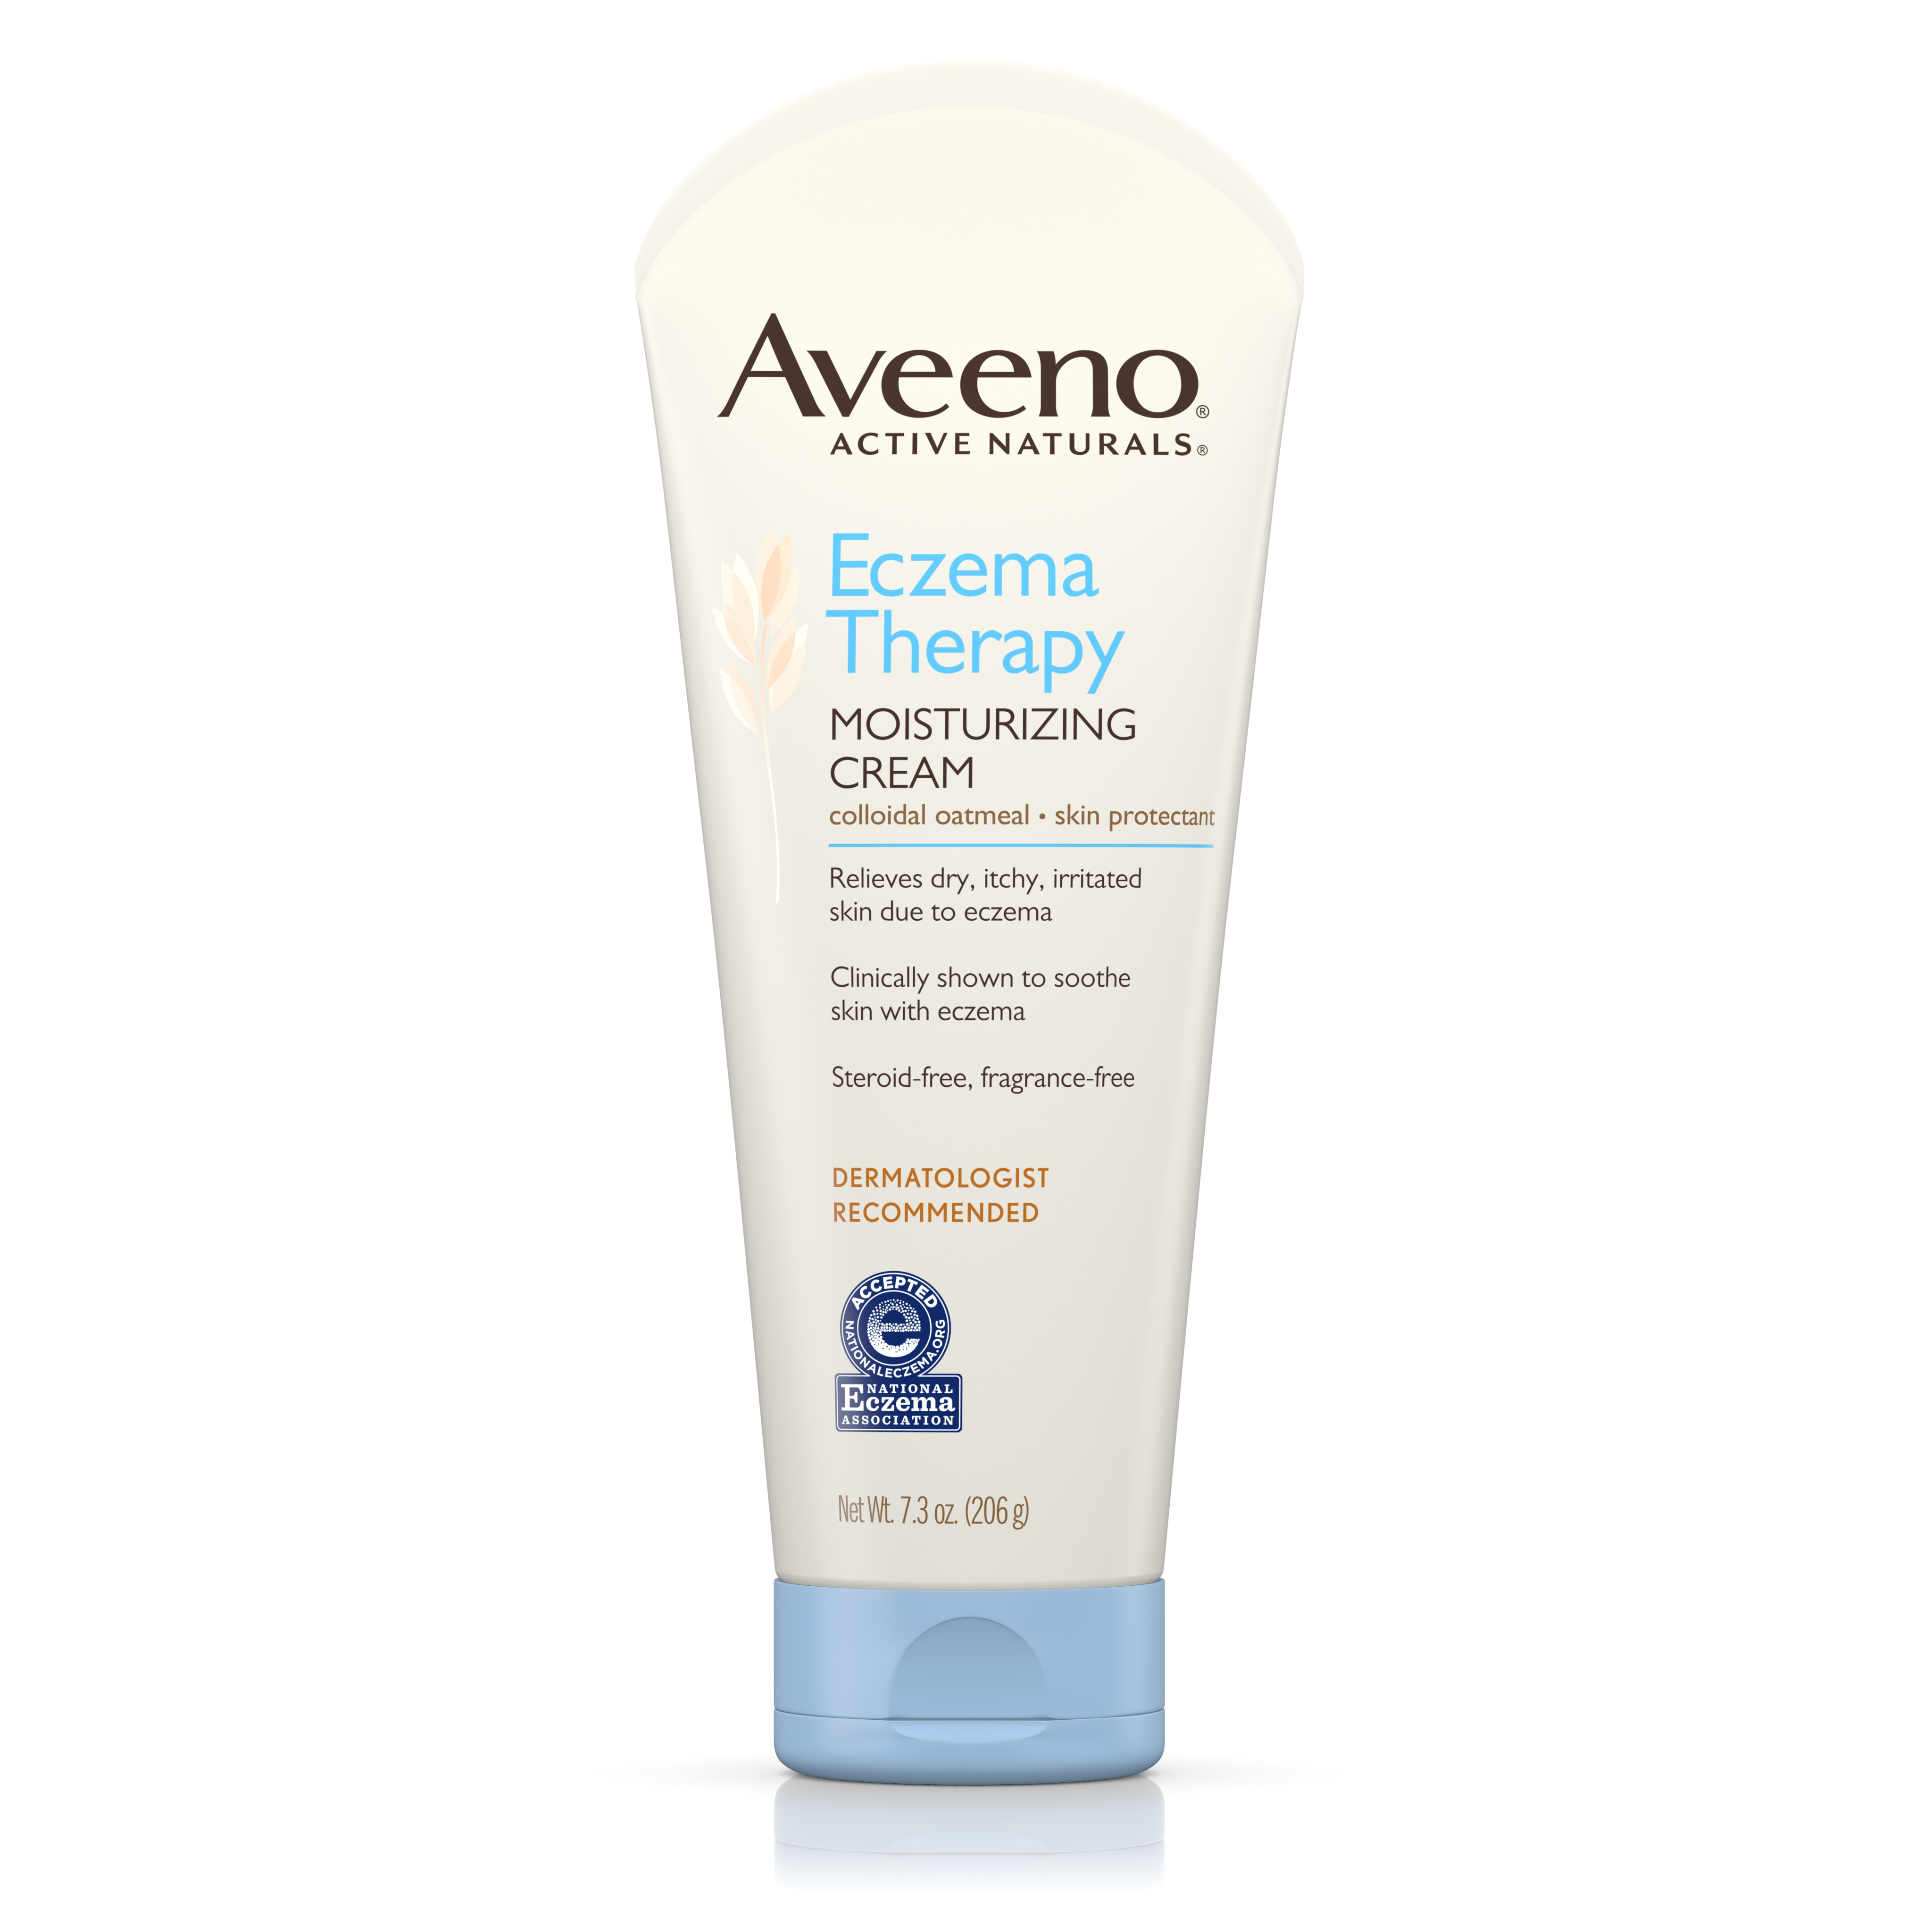 Aveeno Eczema Therapy Moisturizing Cream For Sensitive Skin, 7.3 Oz - Walmart.com